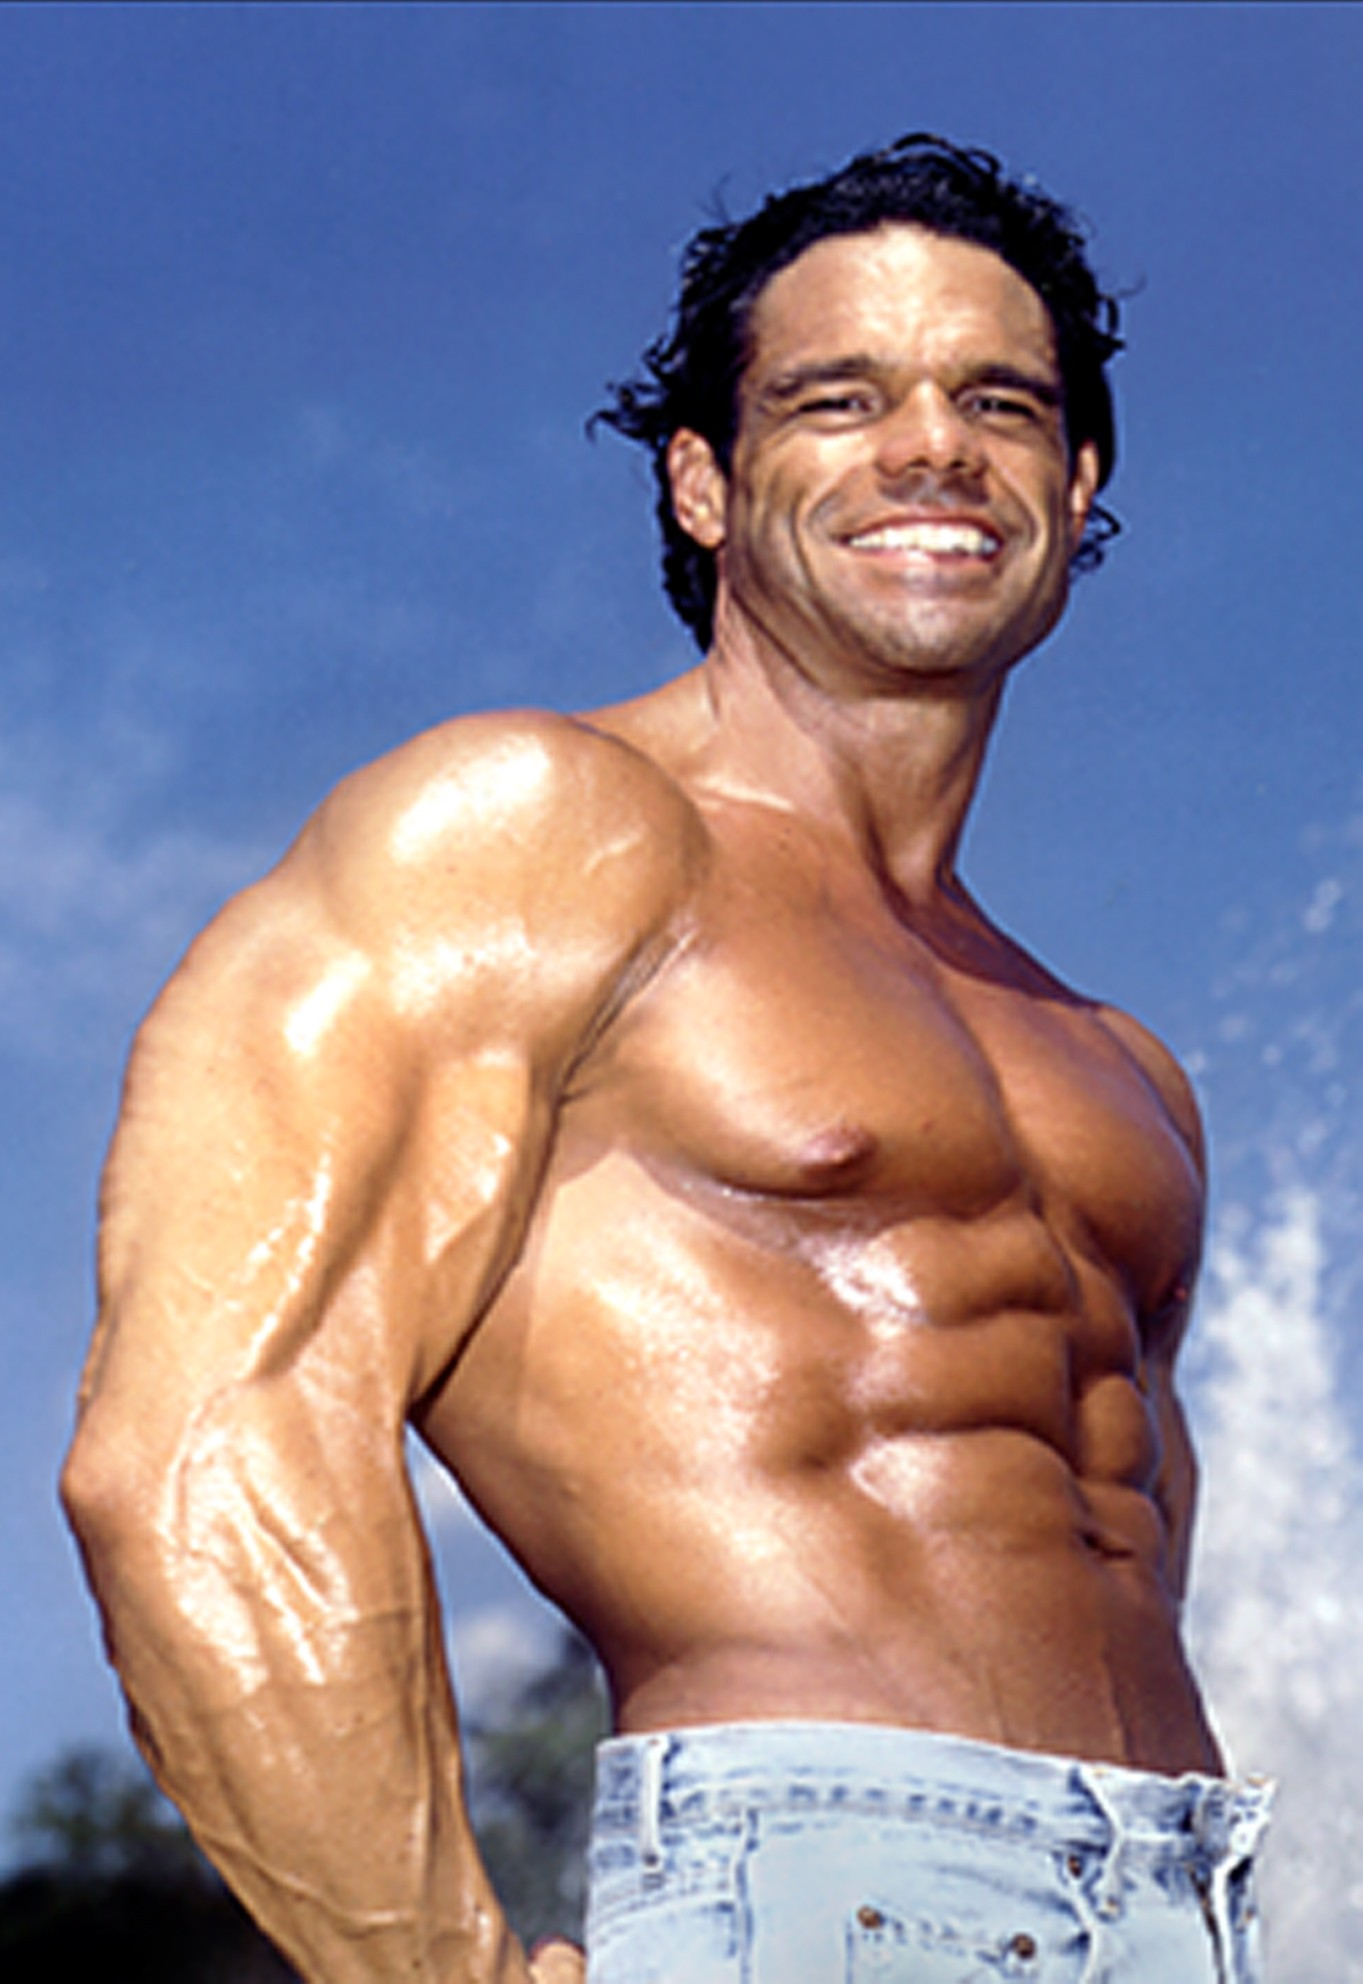 Author Bodybuilder Paul Burke Releases New Book On Nutrition